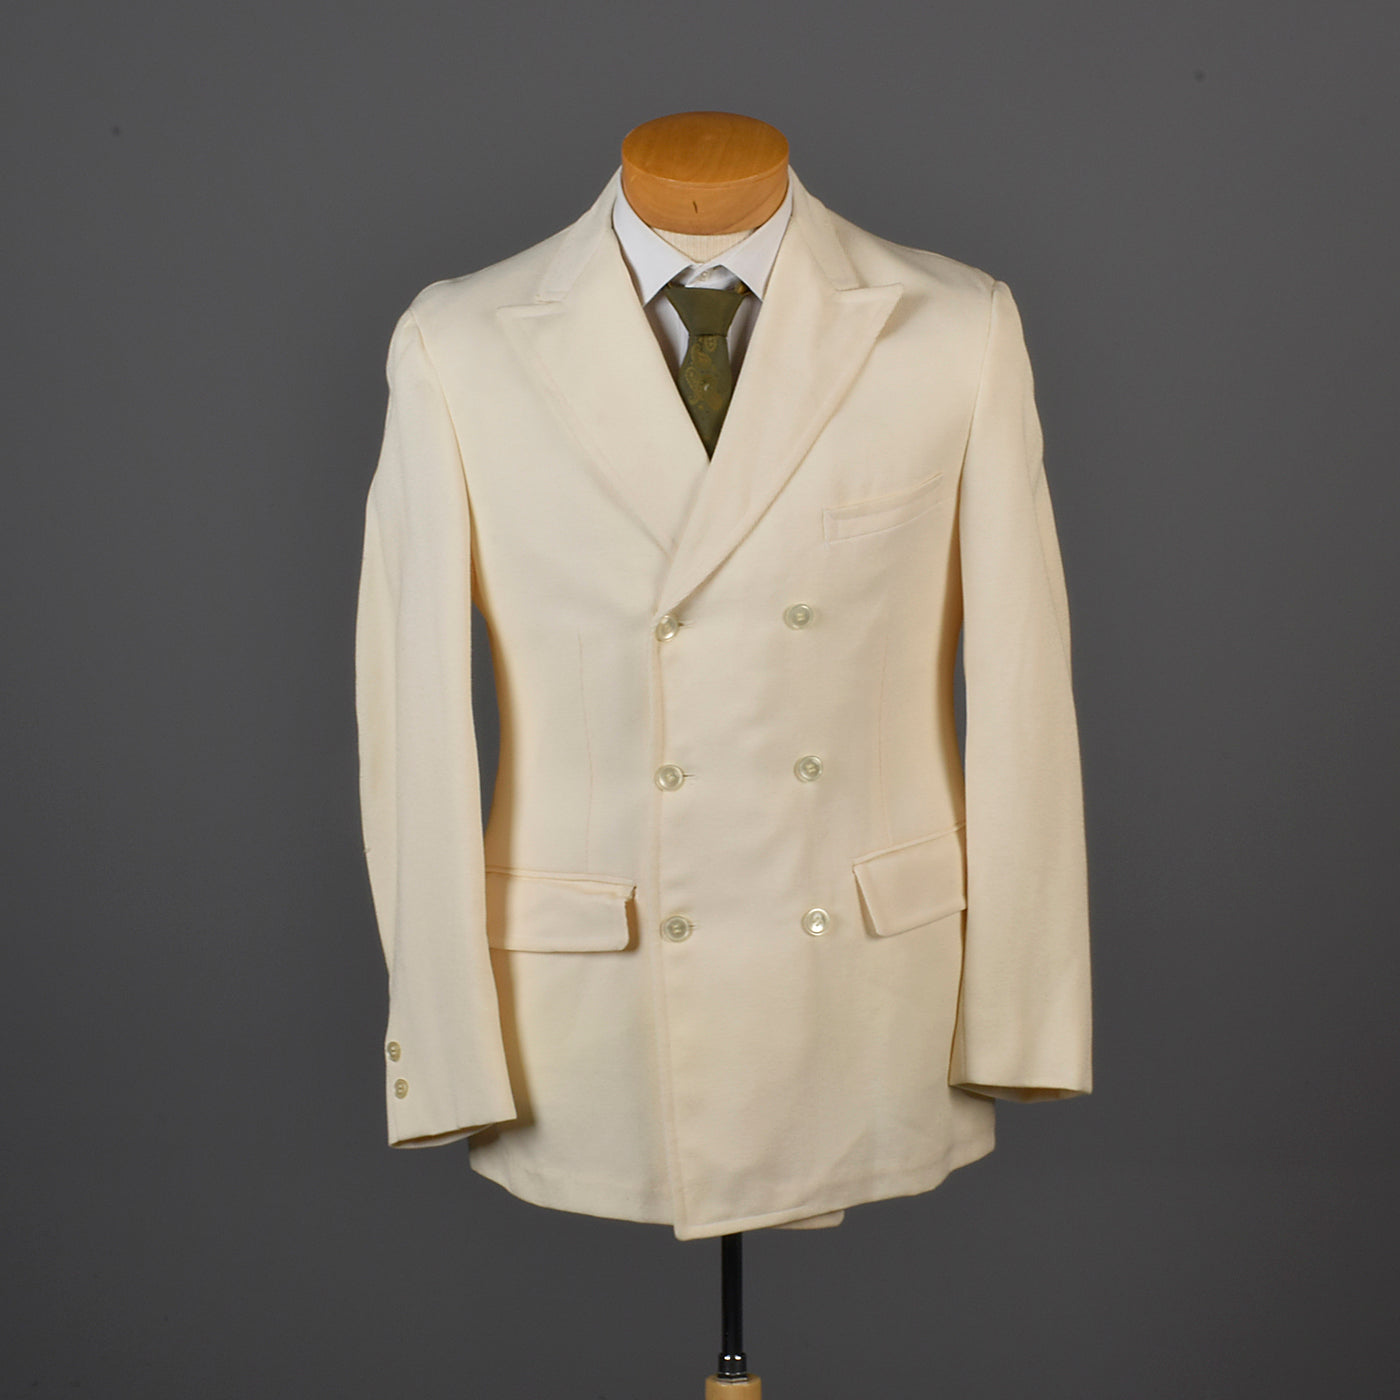 1960s Men's Double Breasted Palm Beach Jacket